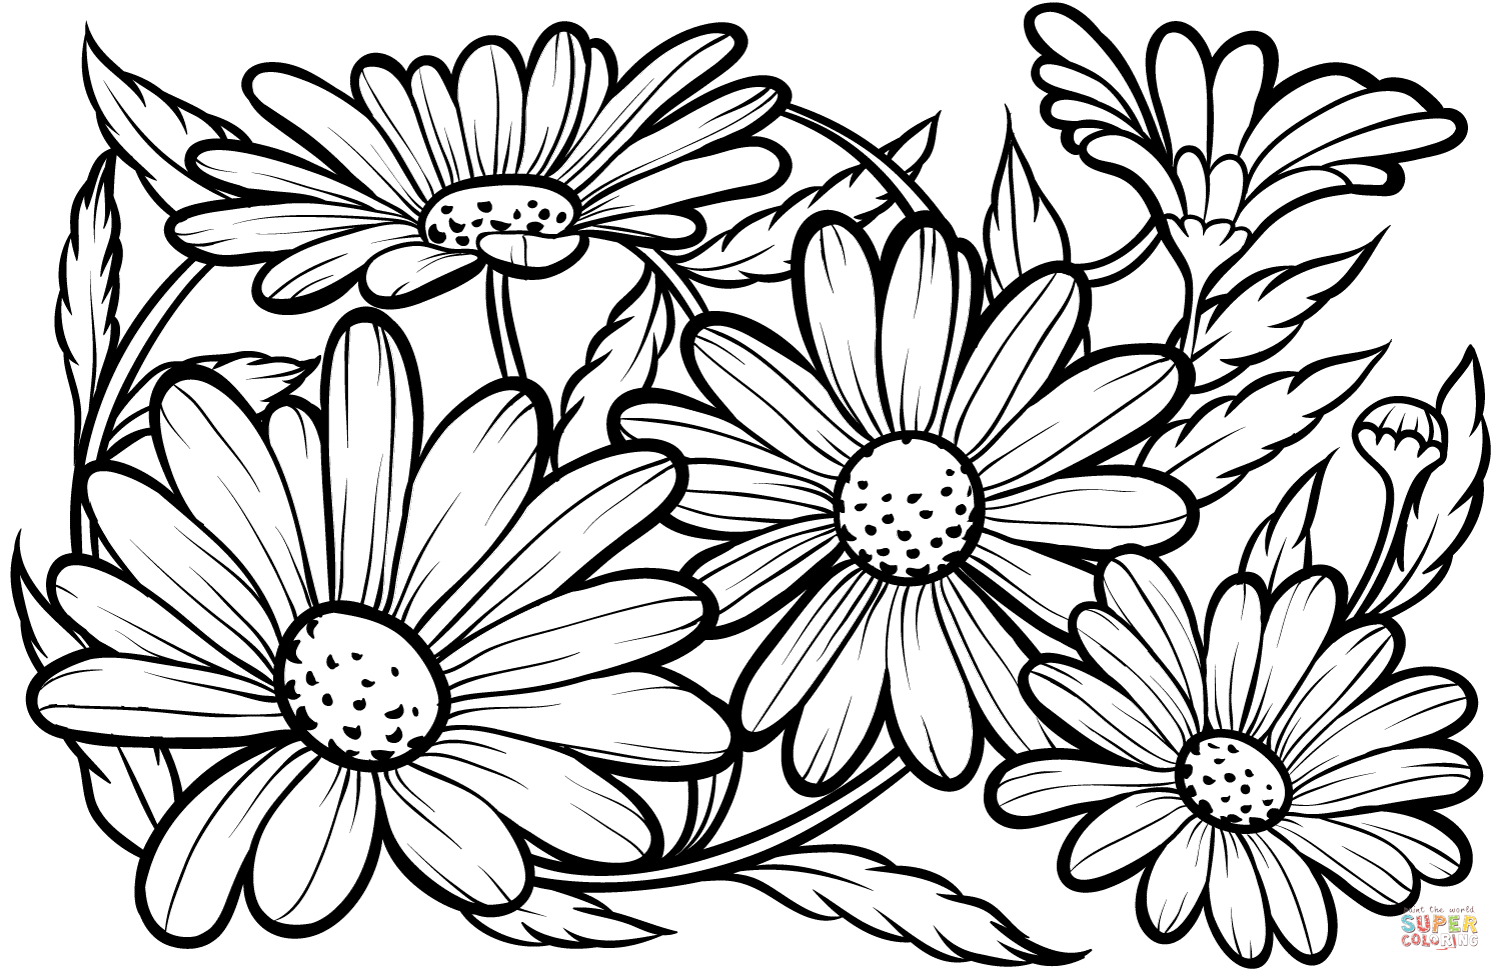 Daisies Coloring Pages Home